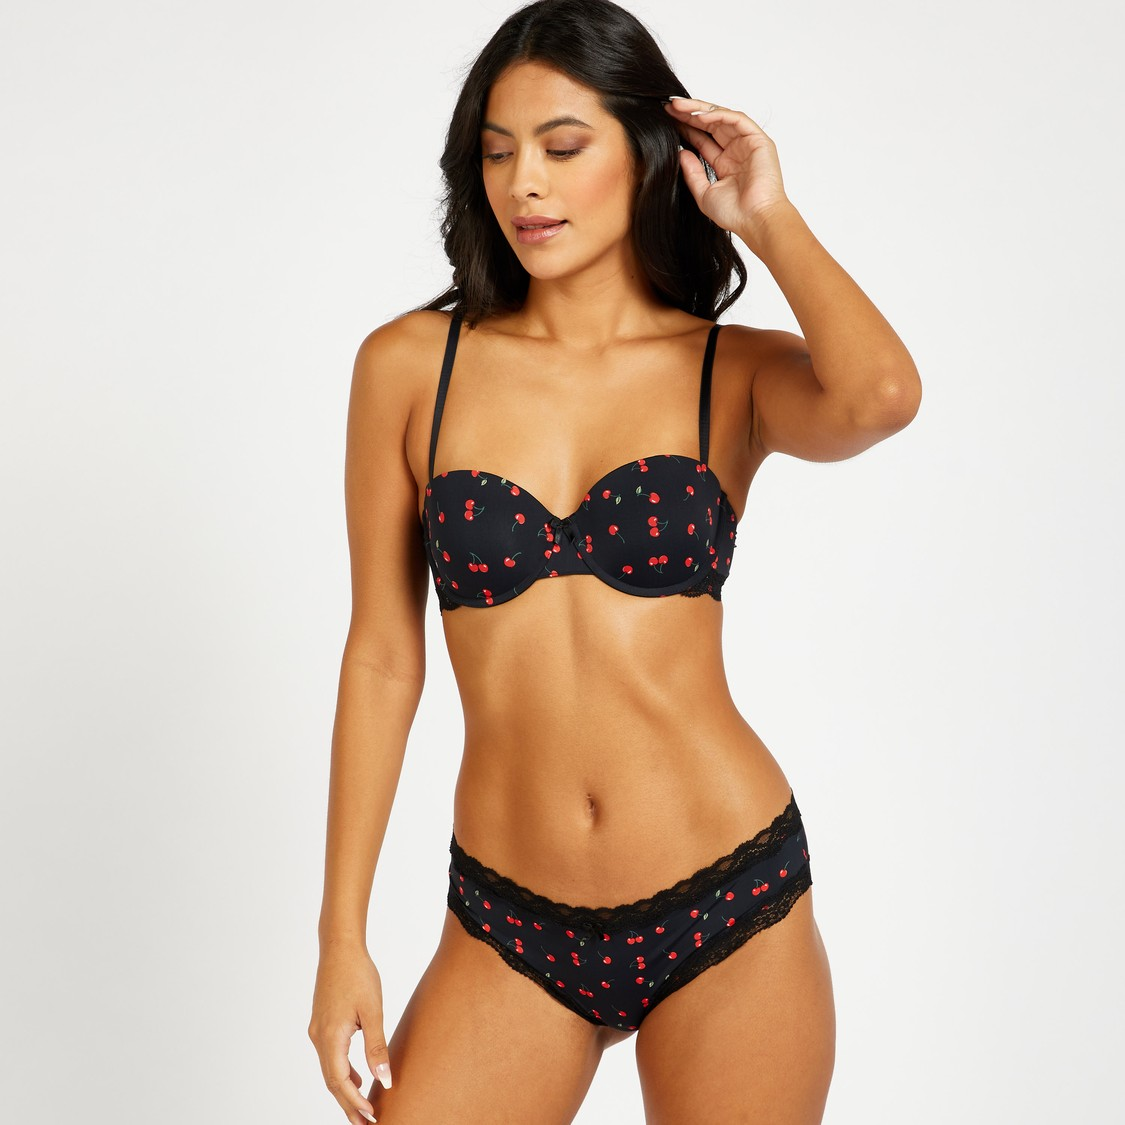 Cherry Print Brazilian Briefs with Lace Detail